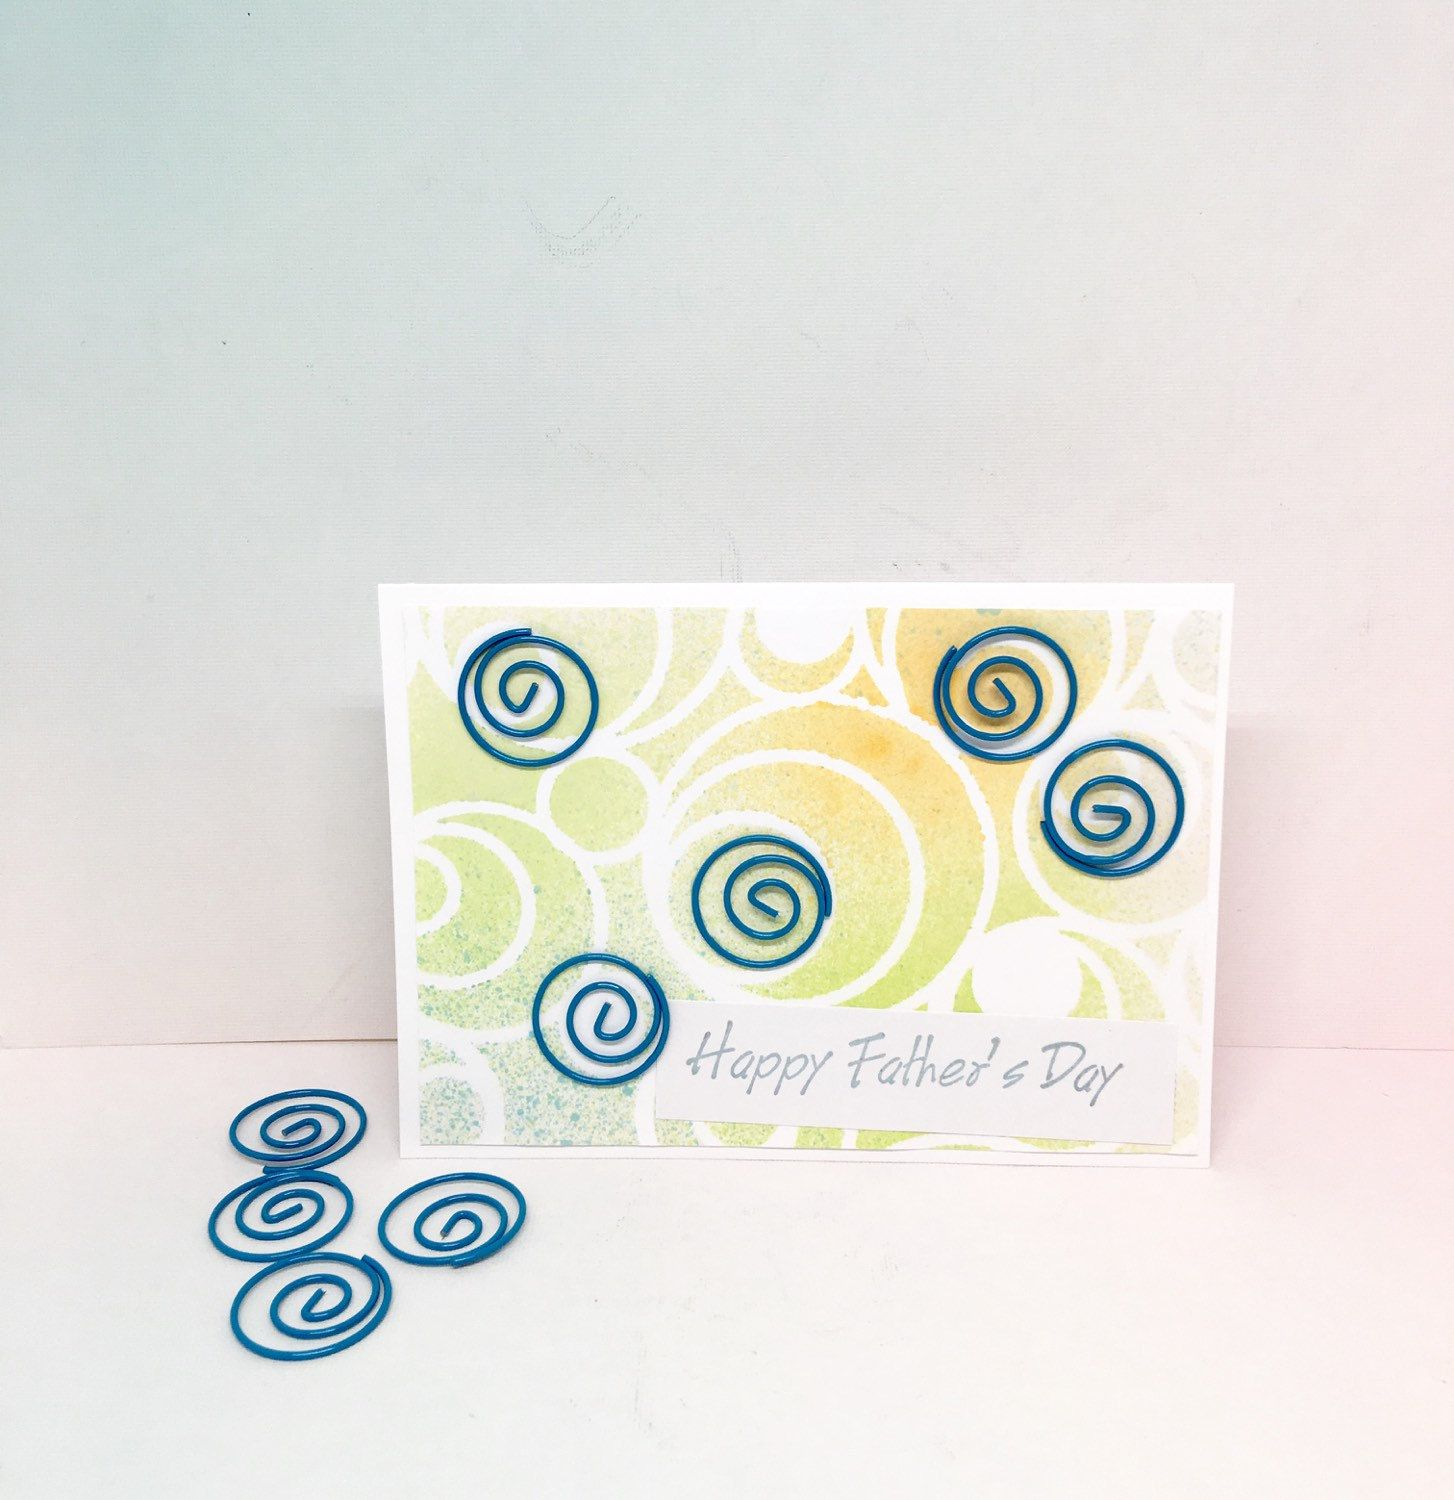 Fathers Day Card - Paper Handmade Greeting Card - Fathers Day Gifts -  Swirl Card - Card for Father - Note Card - Stationery - Paper Goods by byLisaCardsCrafts on Etsy  $4.99